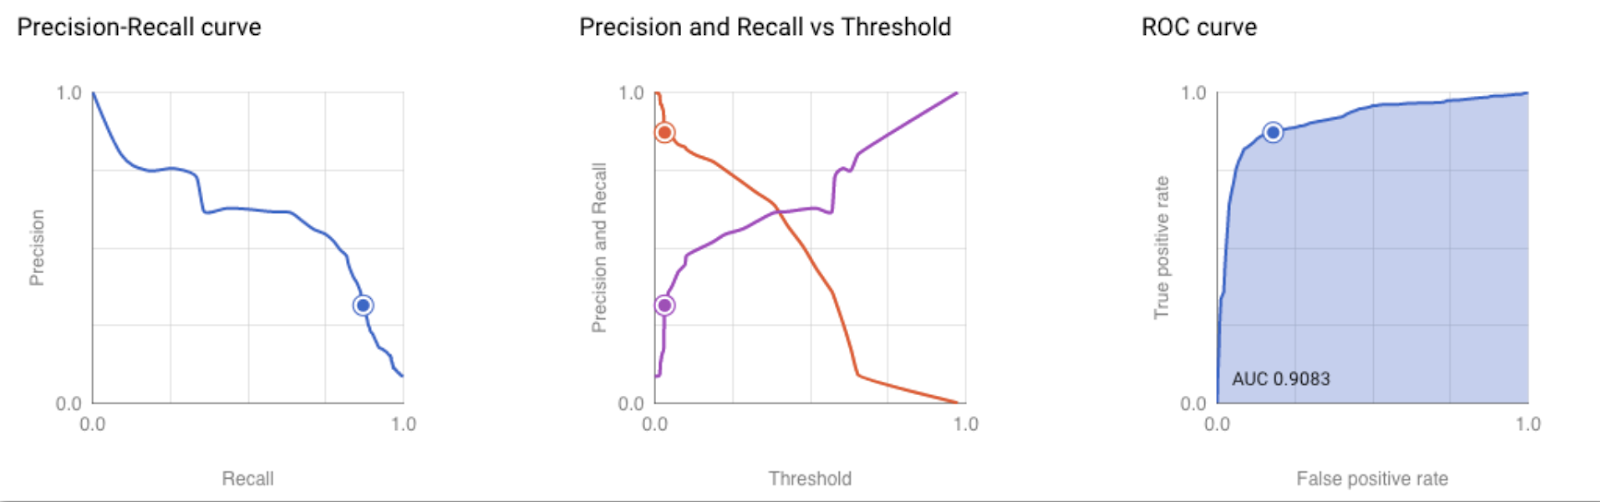 precision-recall curve, roc curve, and other charts.